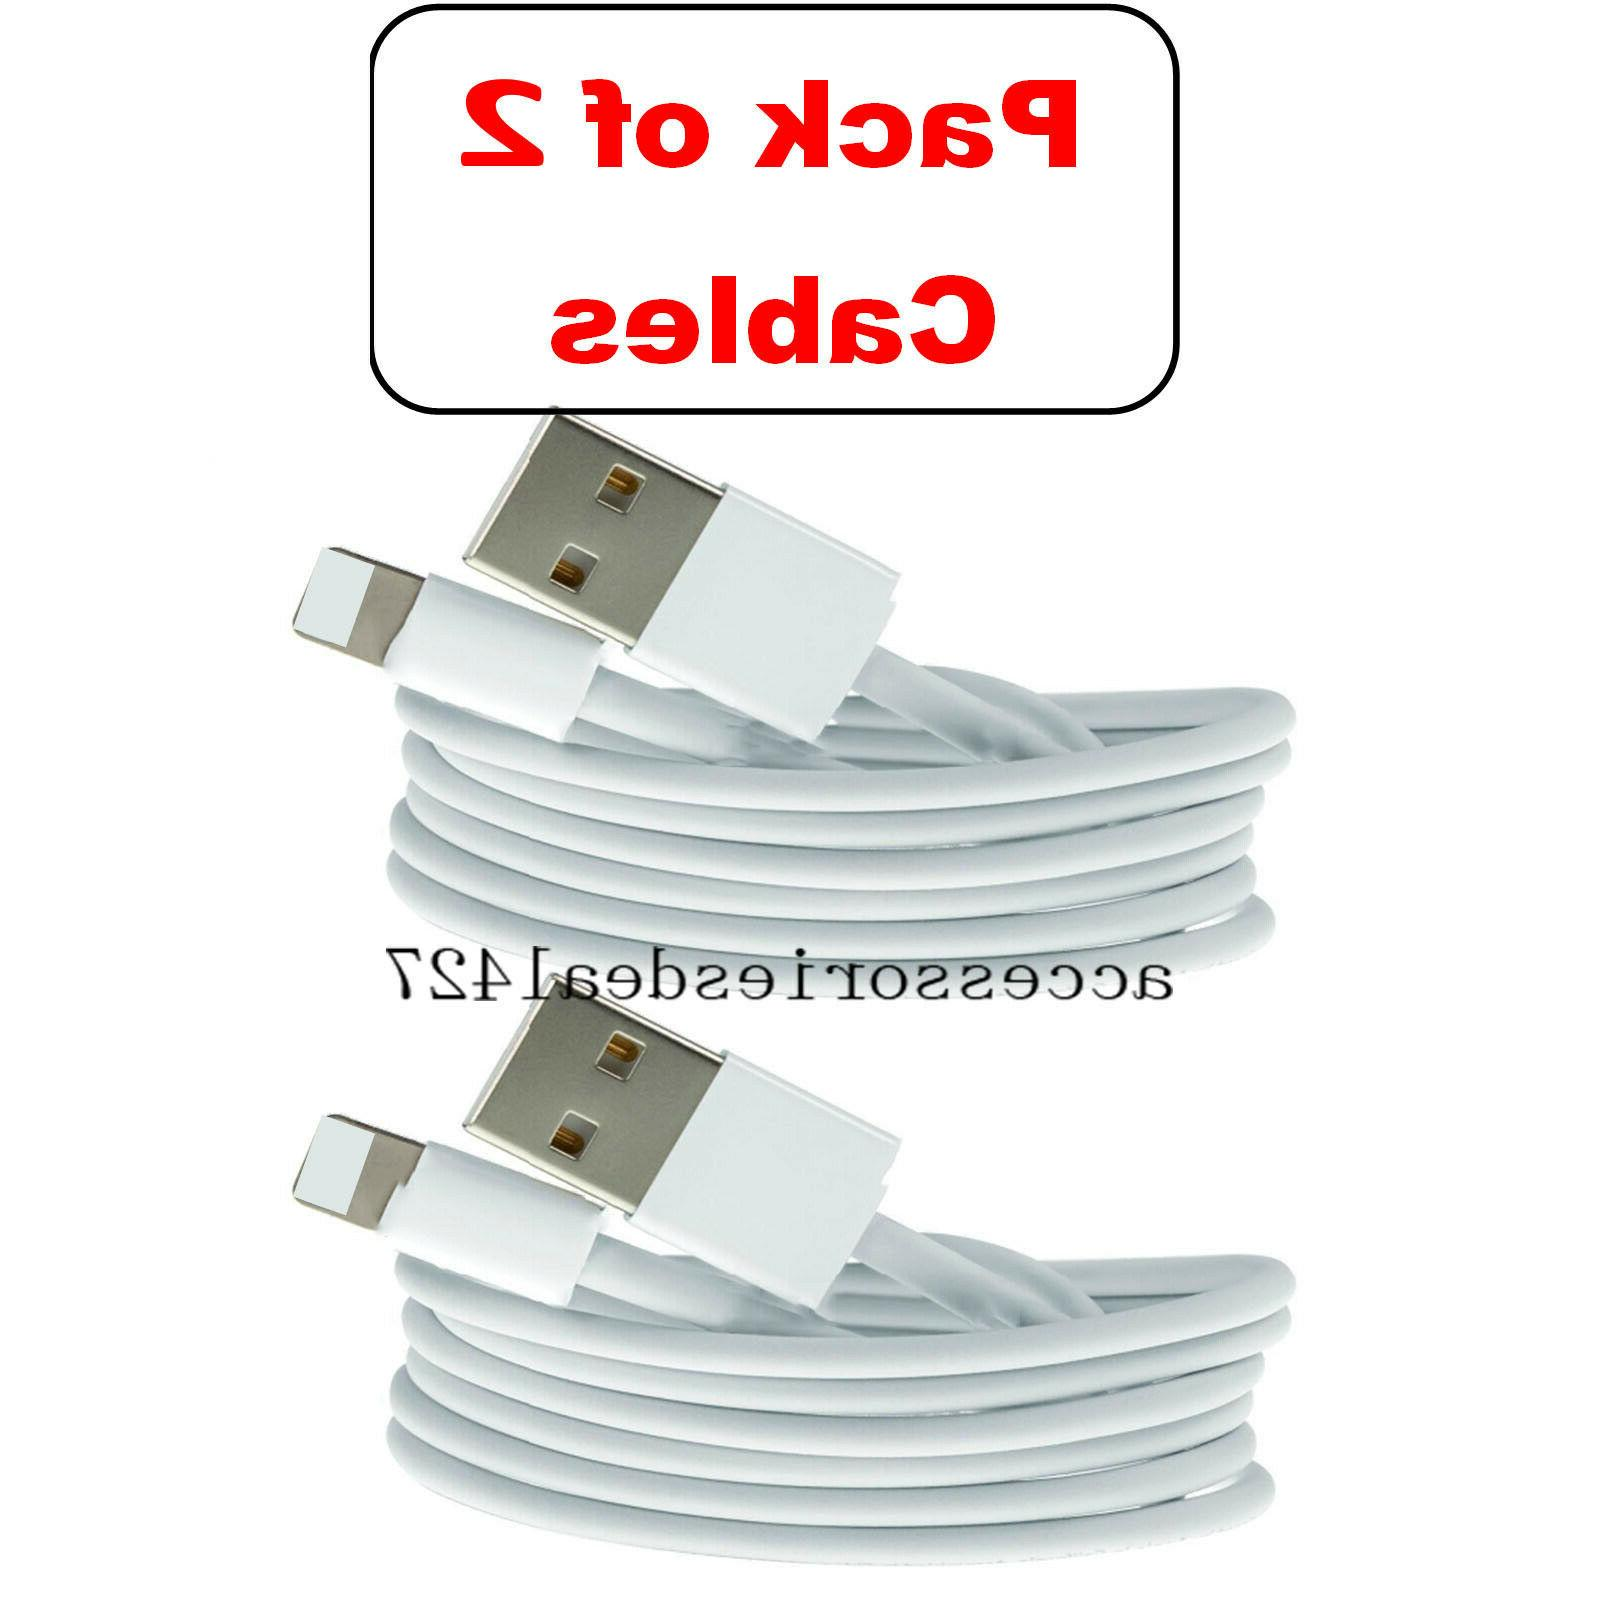 2pack 3ft usb cable for original apple